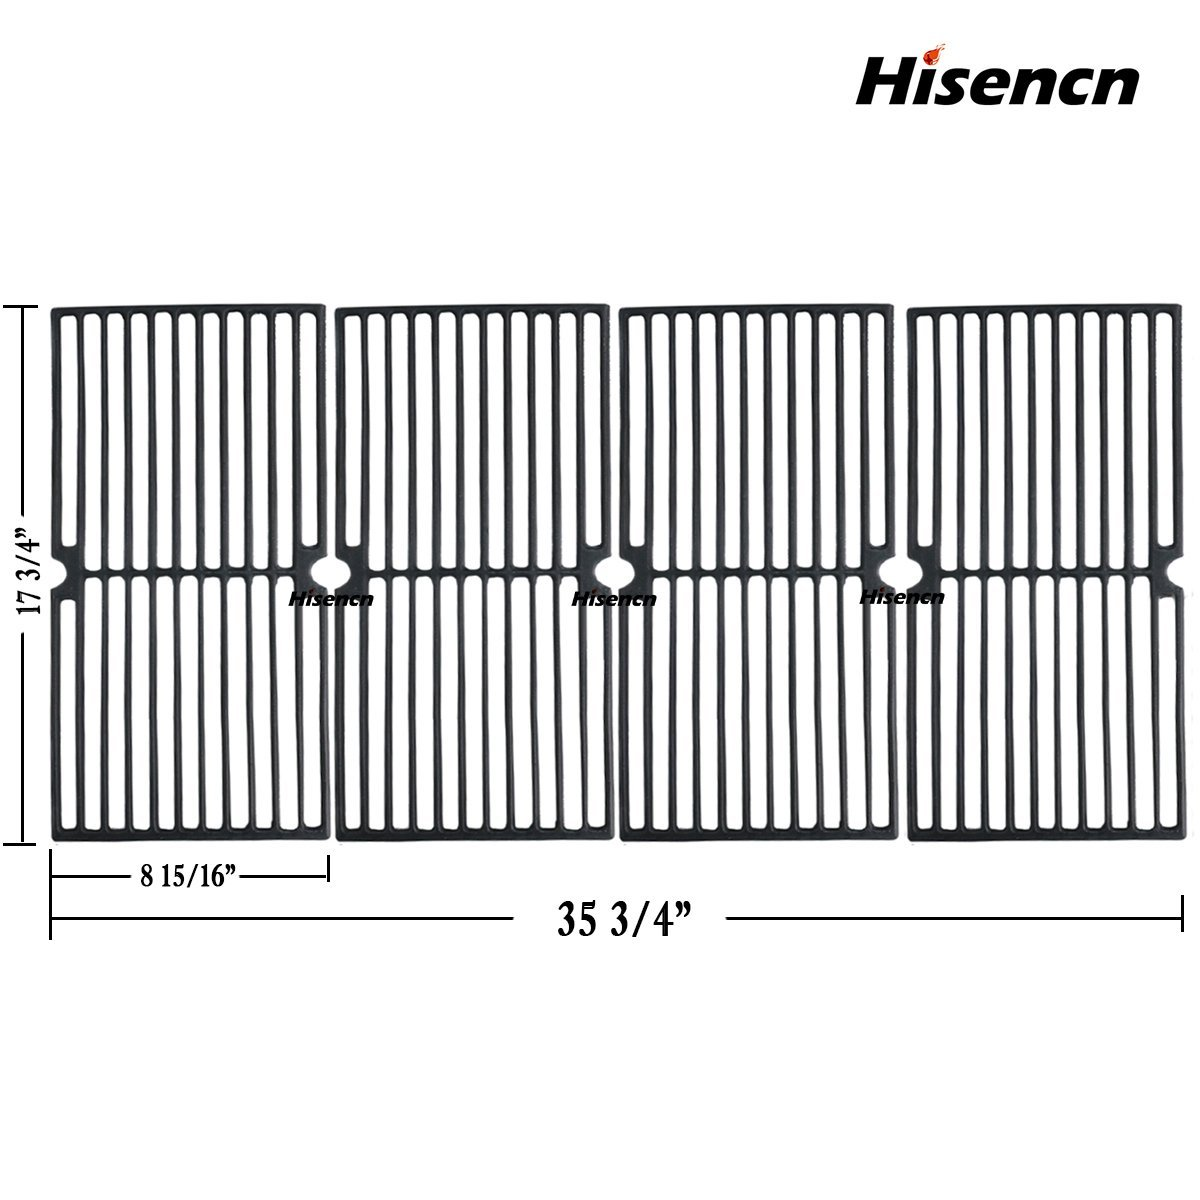 Hisencn Repair Parts Cast Iron Cooking Grid Replacement for Gas Grill Models Brinkmann 810-3660-S, 810-3661-F and Smoke Canyon GR2002401-5C-00, Grill Grates Set of 4